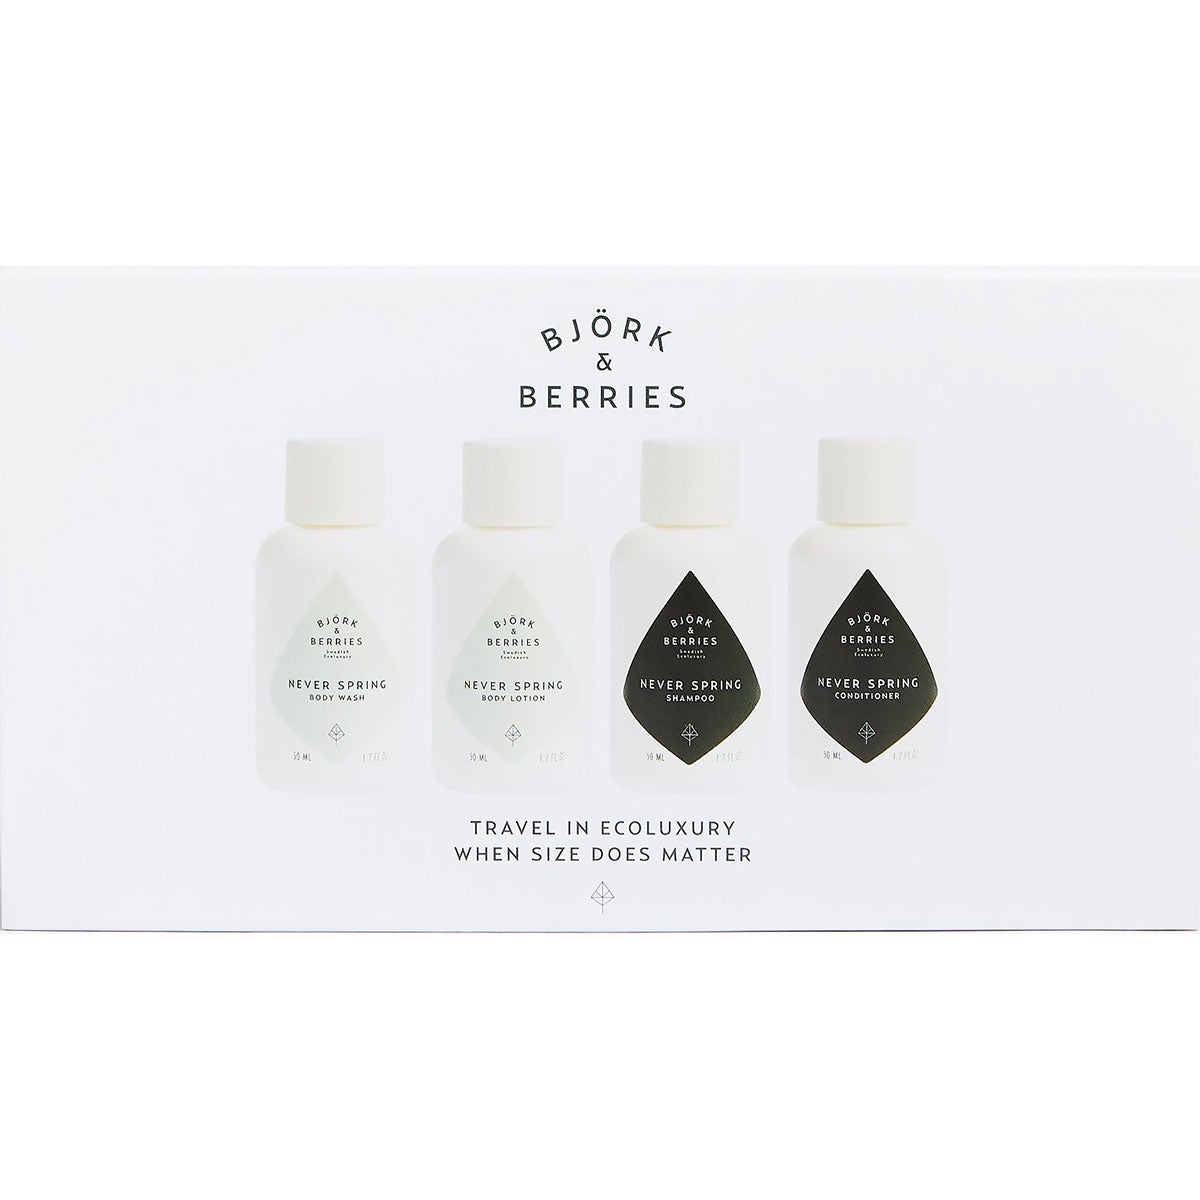 Björk & Berries Never Spring Ecoluxury Travel Kit